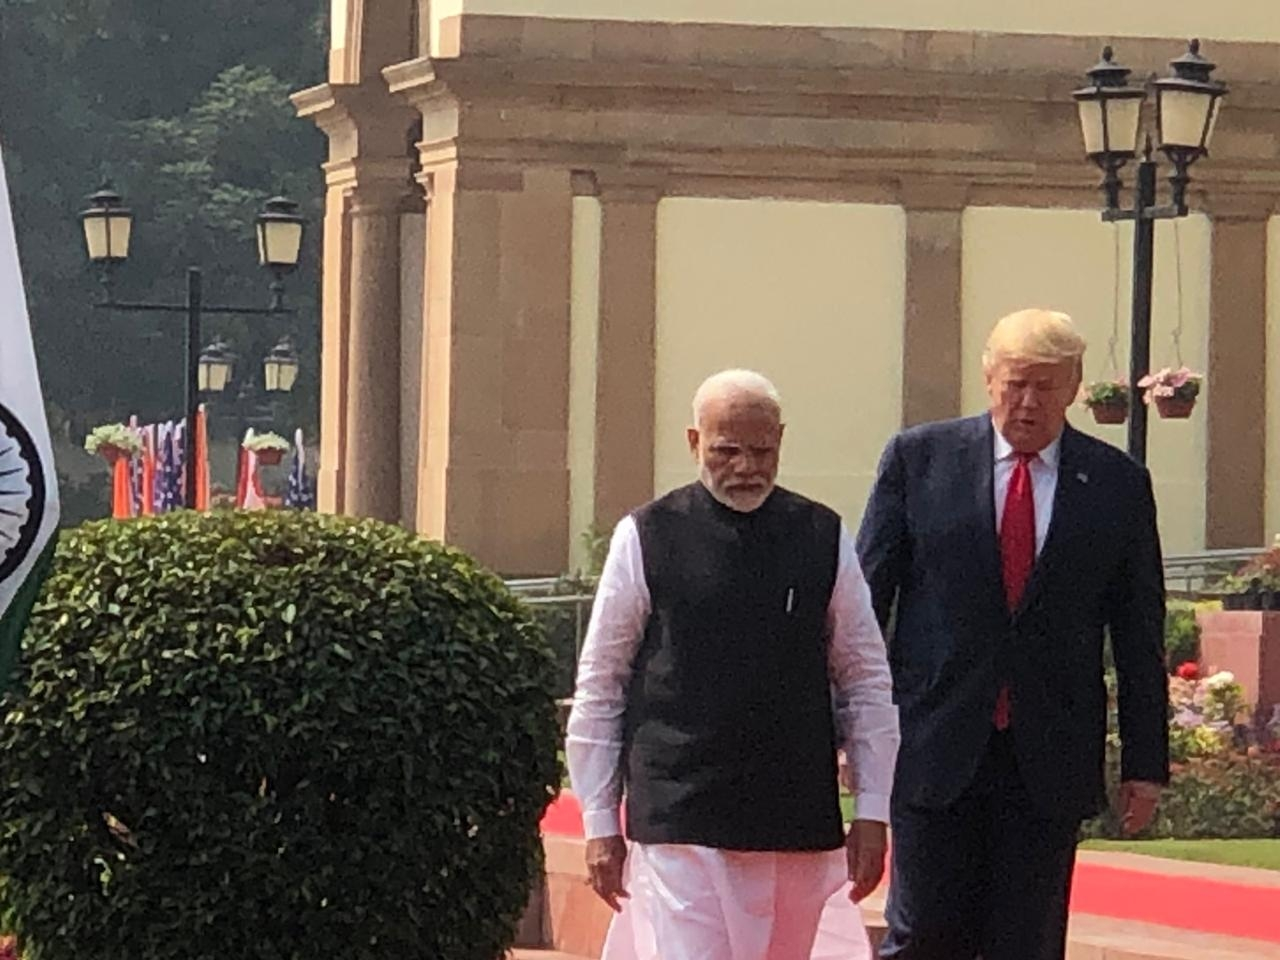 New Delhi: Prime Minister Narendra Modi receives US President Donald Trump at the Hyderabad House in New Delhi on Feb 25, 2020. (Photo: IANS)